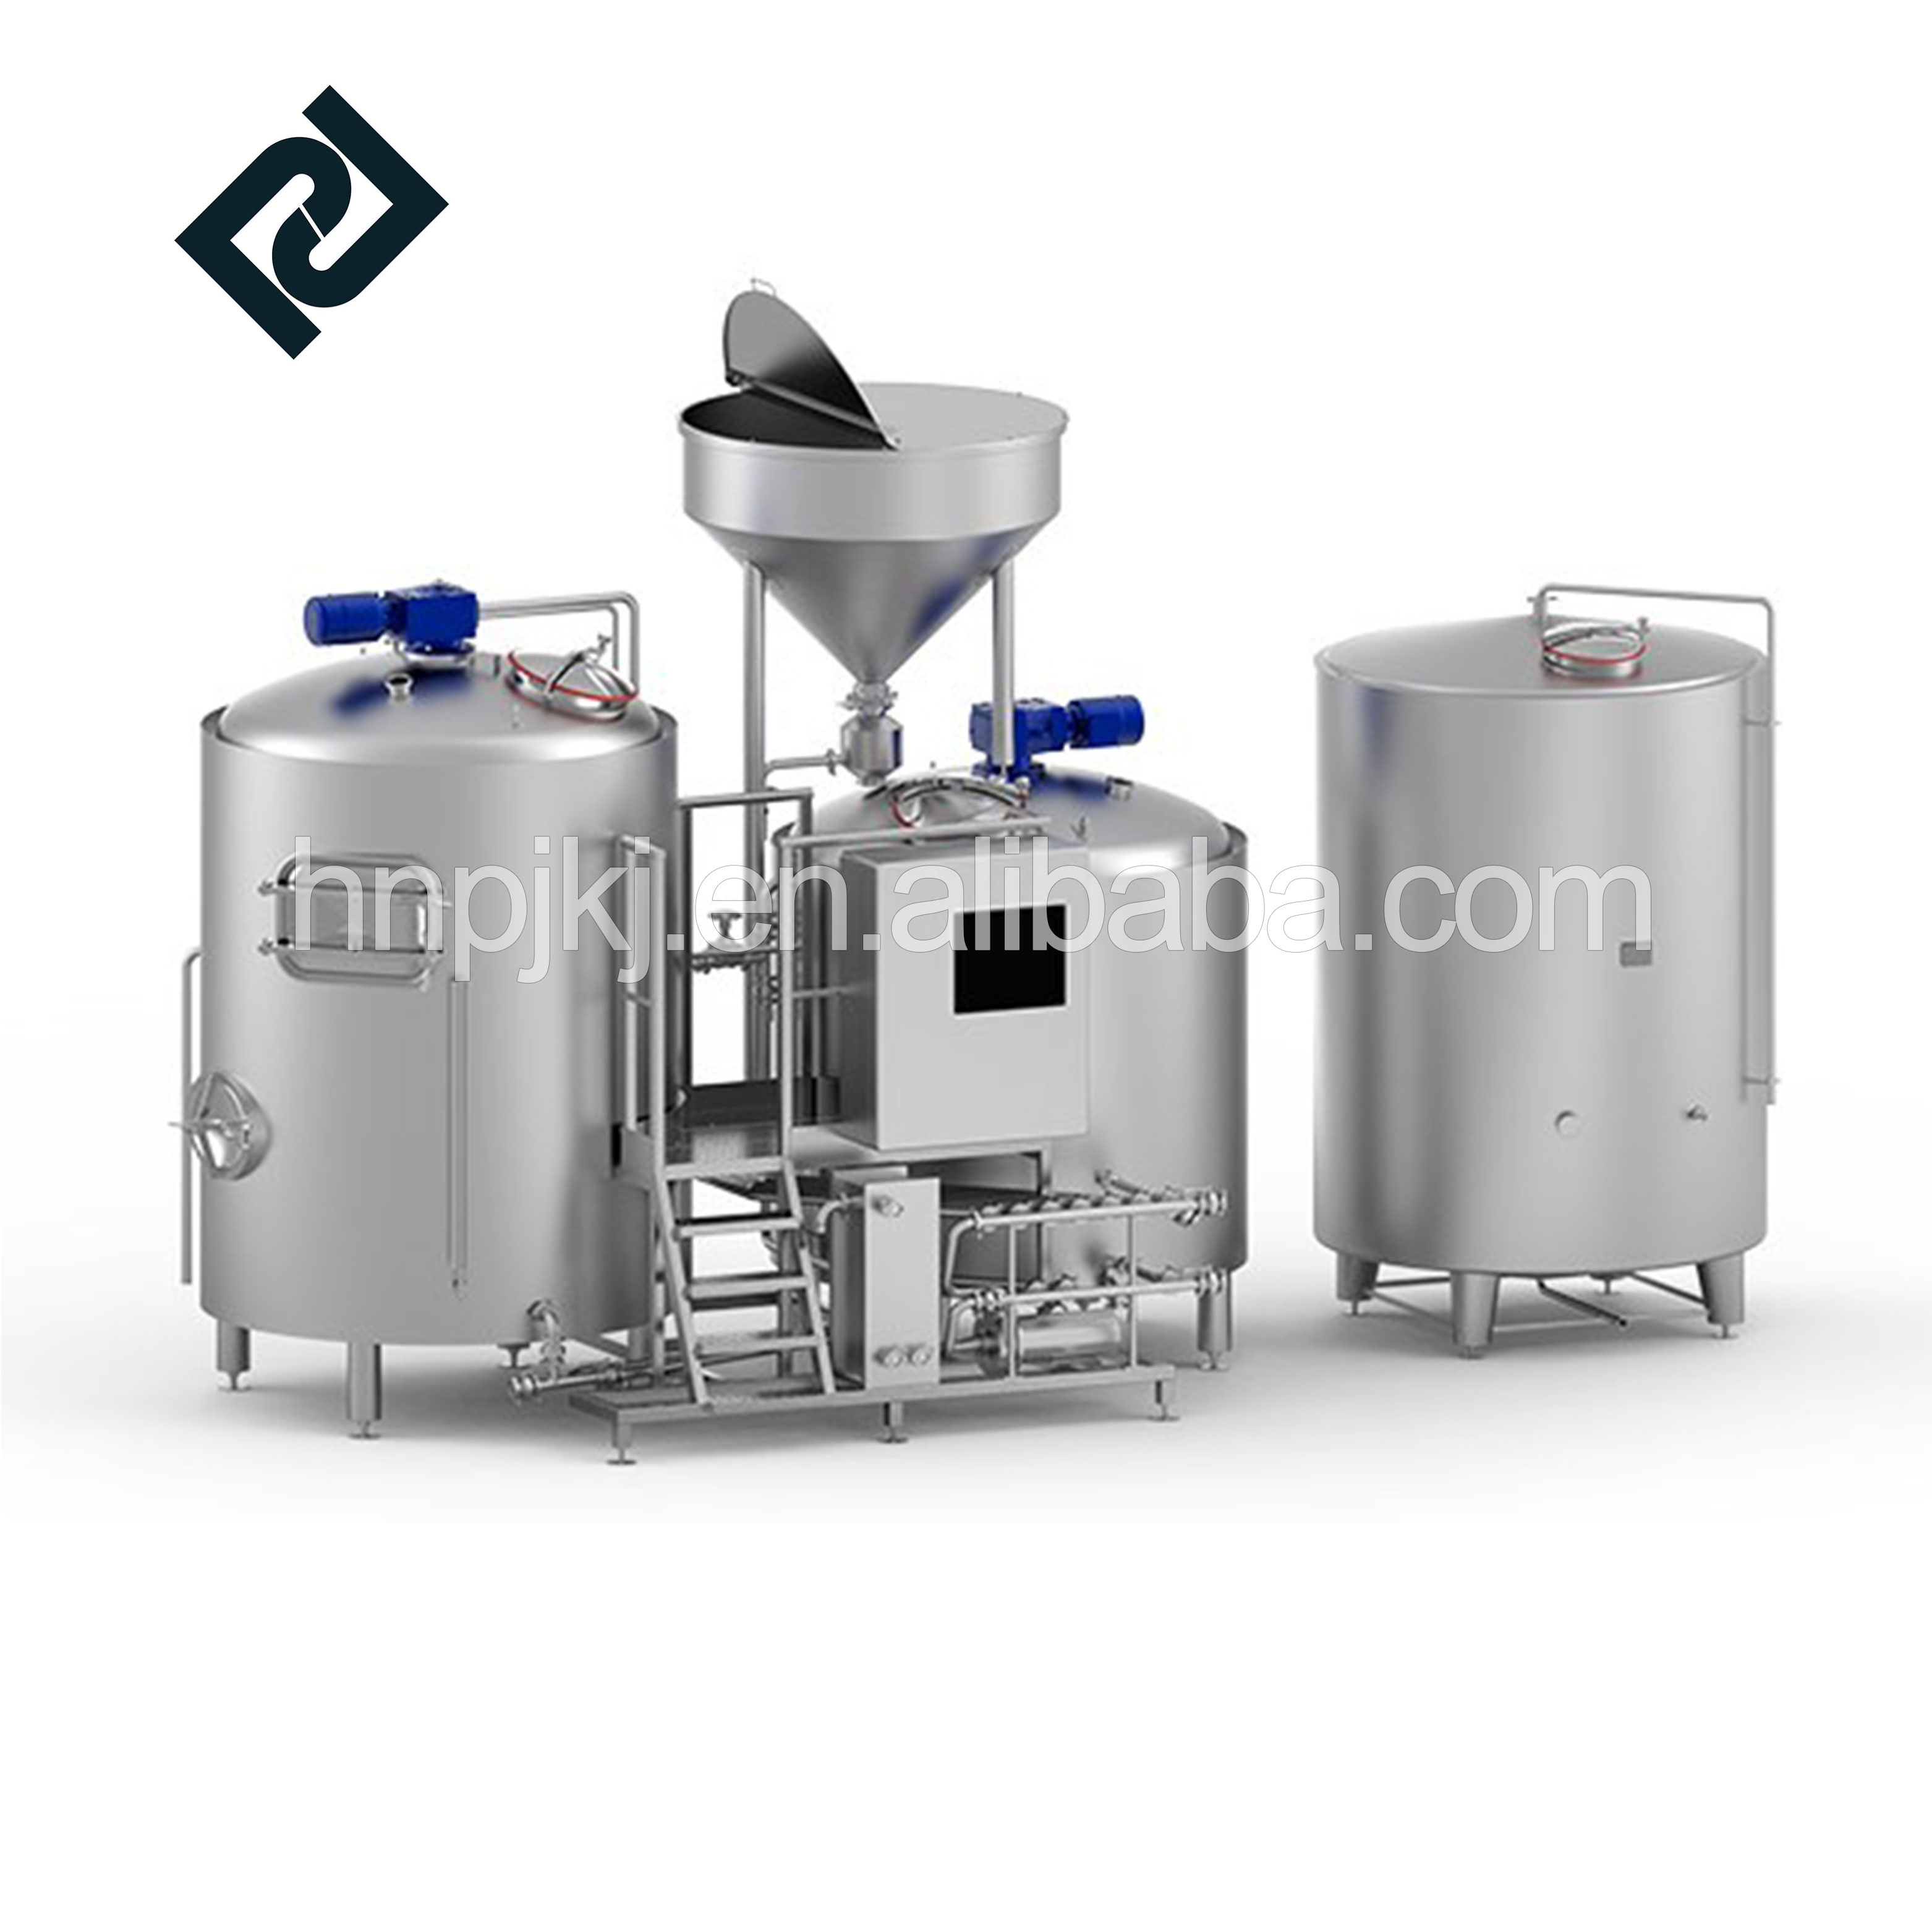 Factory source 1000lts Beer Brewing Equipment - high quality  cheap beer brewing equipment beer brewing equipment supplier from china – Pijiang